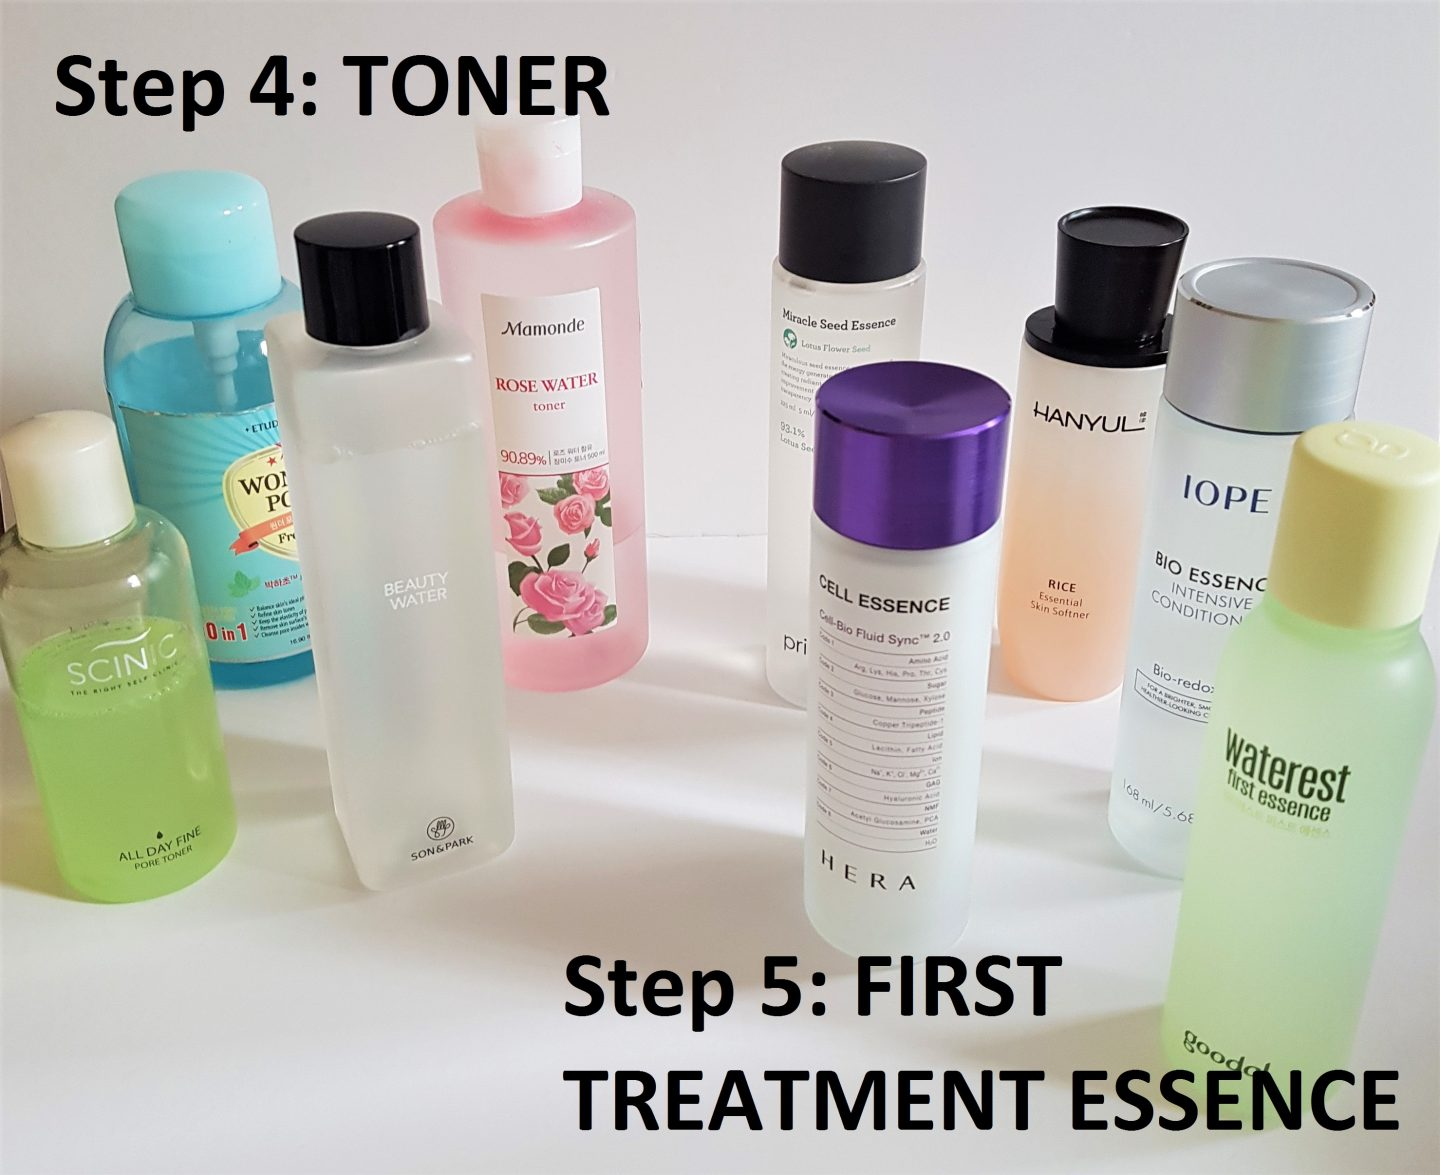 KOREAN SKINCARE ROUTINE 101: Part 2: Toner & First Treatment Essence